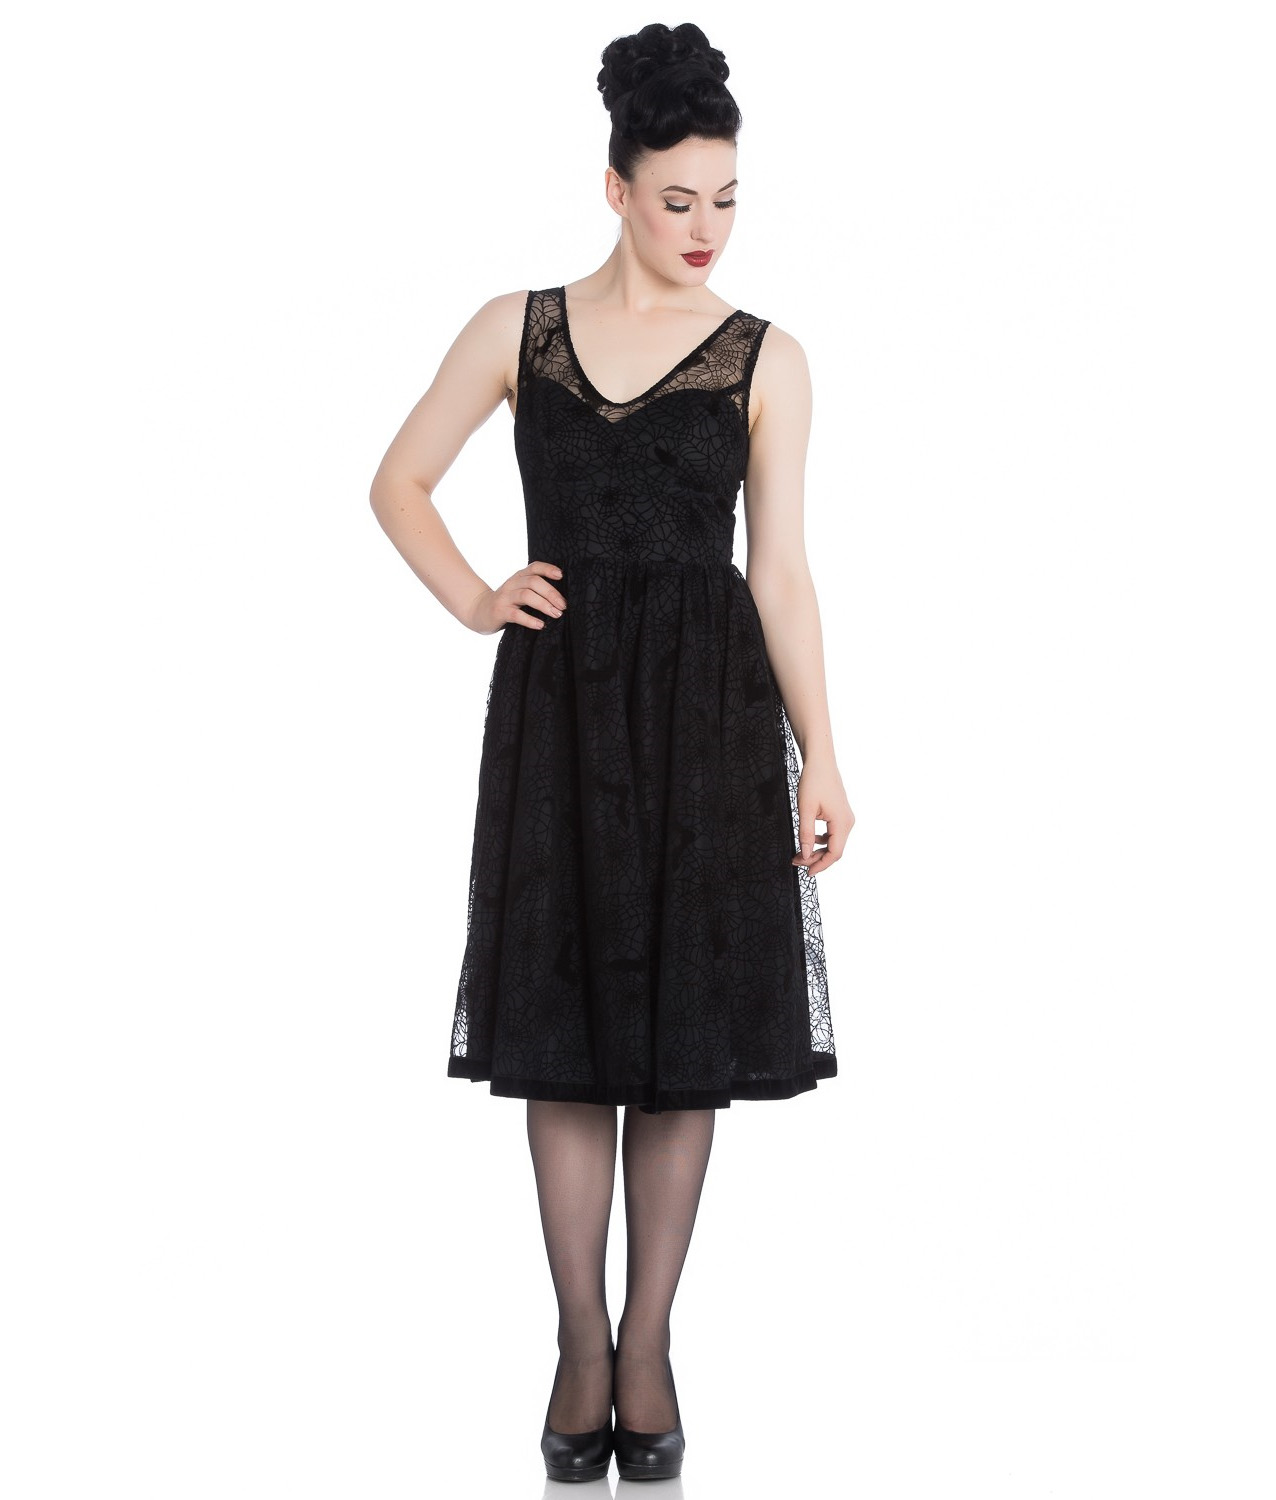 Hell-Bunny-50s-Black-Gothic-Net-Dress-Witchy-AMARANDE-Spiders-Bats-All-Sizes thumbnail 11